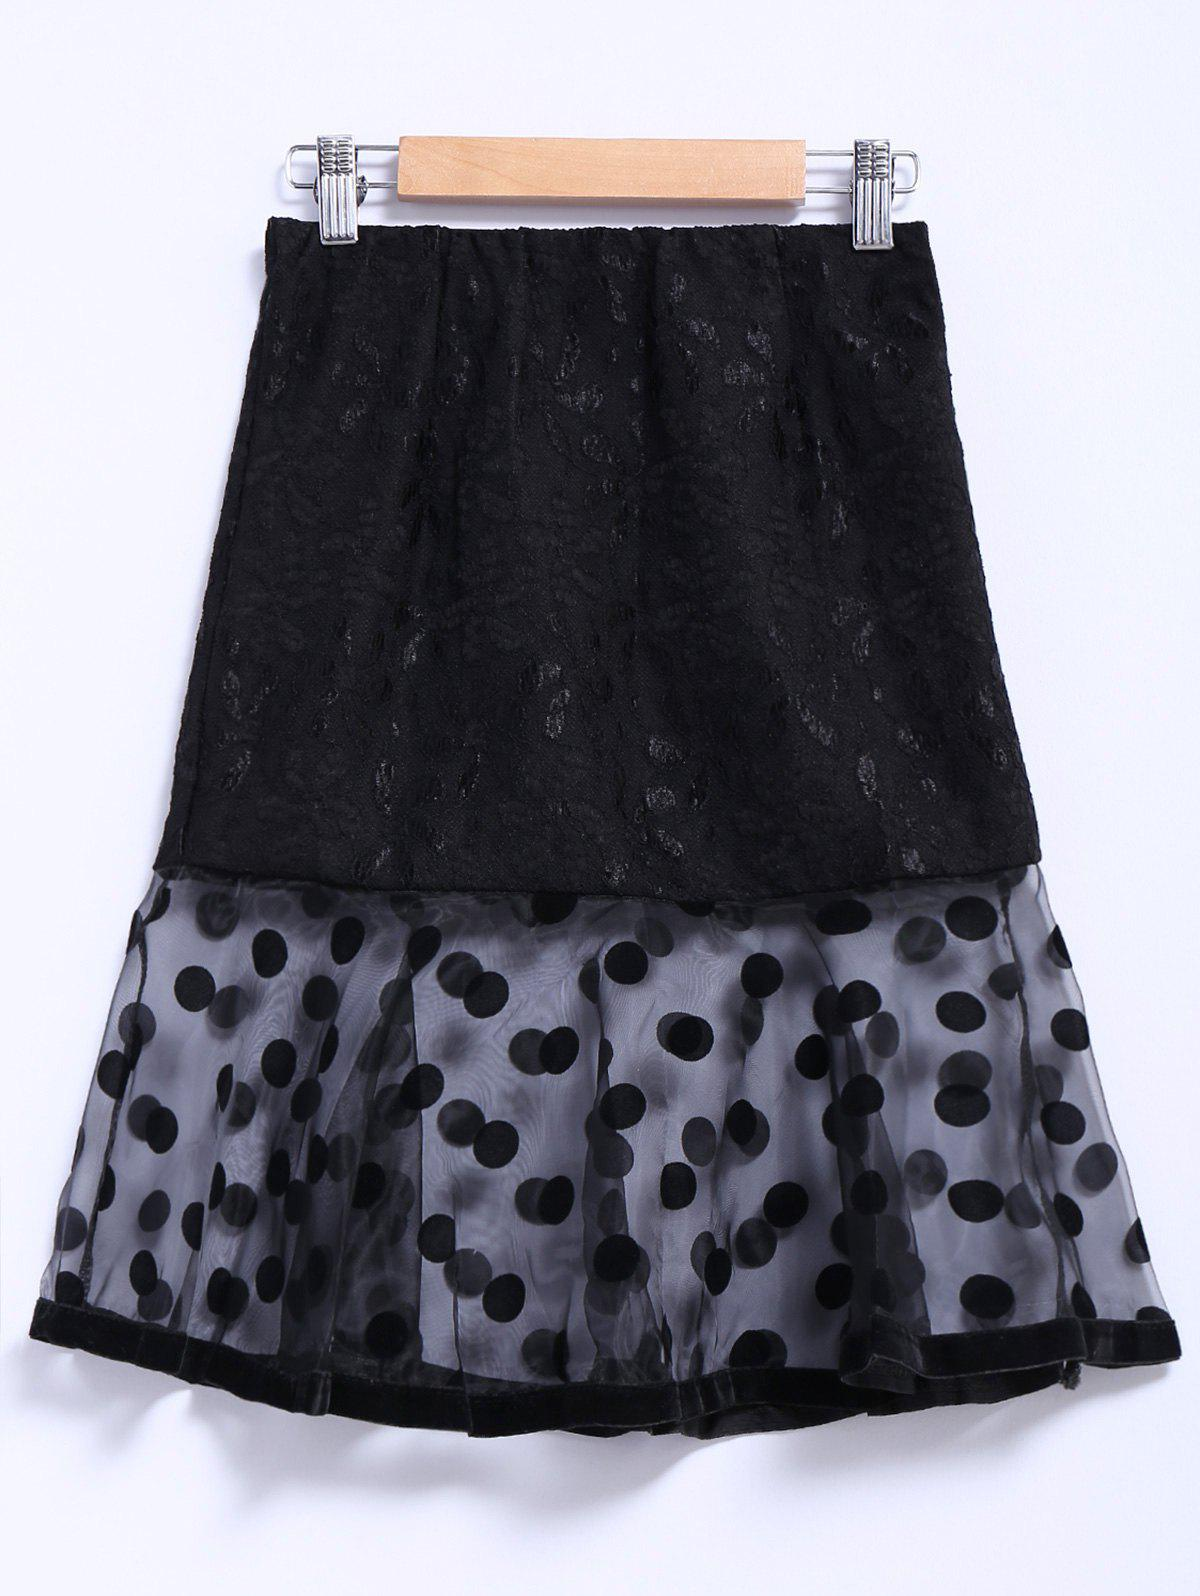 Chic Style Organza Splicing Polka Dot Print Ruffles Black Womens SkirtWOMEN<br><br>Size: L; Color: BLACK; Material: Cotton,Spandex; Length: Mid-Calf; Silhouette: Trumpet/Mermaid; Pattern Type: Polka Dot; Embellishment: Spliced; Weight: 0.550kg; Package Contents: 1 x Skirt;